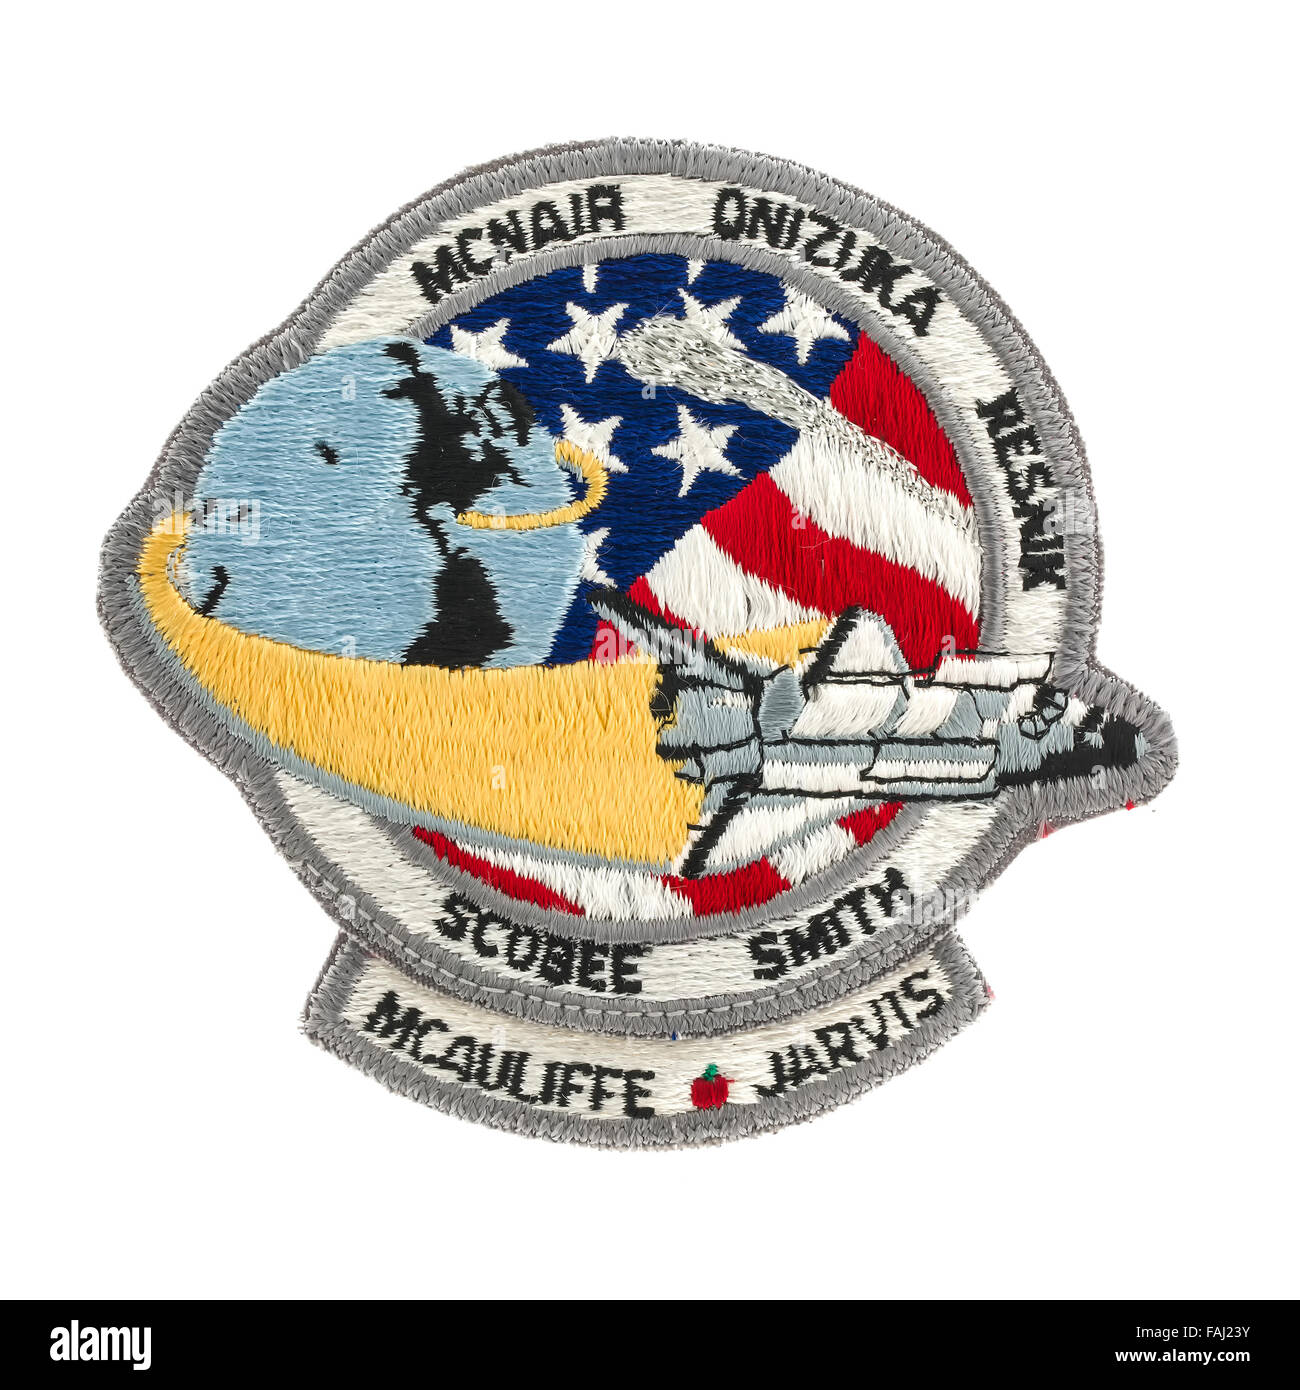 Mission Badge from the ill fated STS-51L Space Shuttle Flight - Stock Image